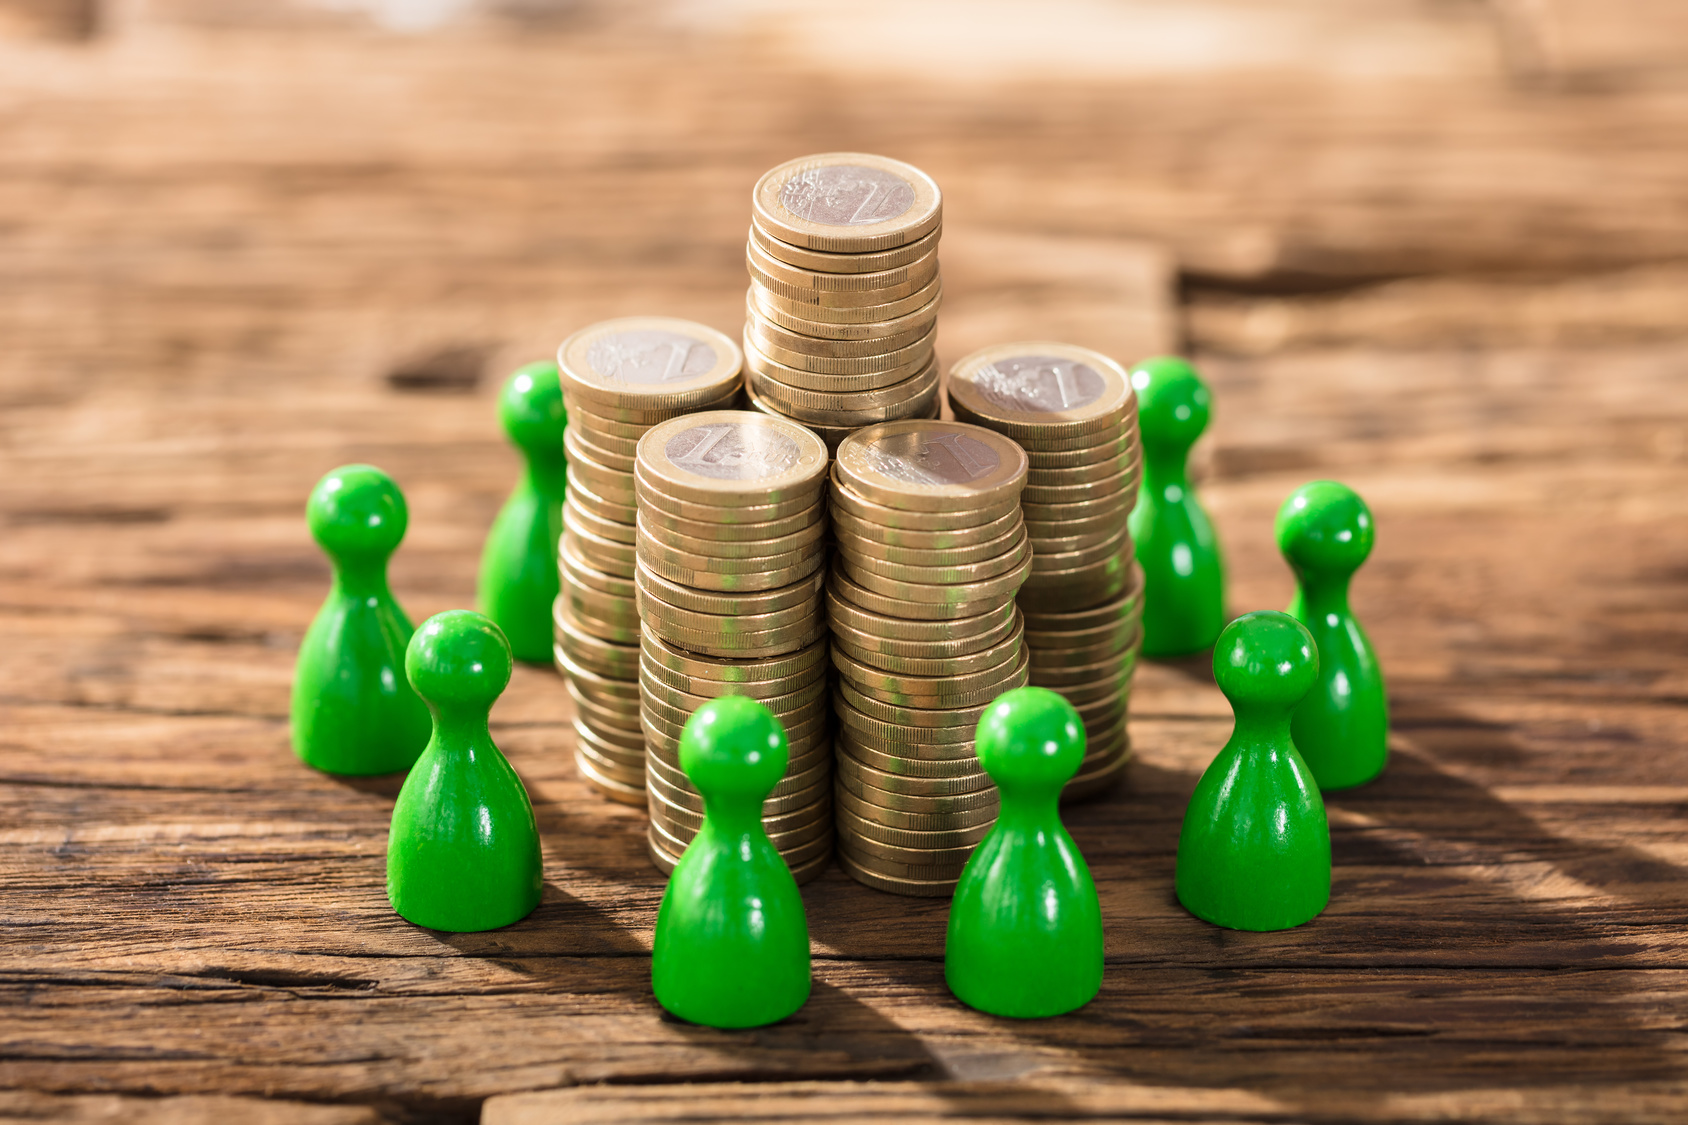 Stack Of Coins With Green Figures